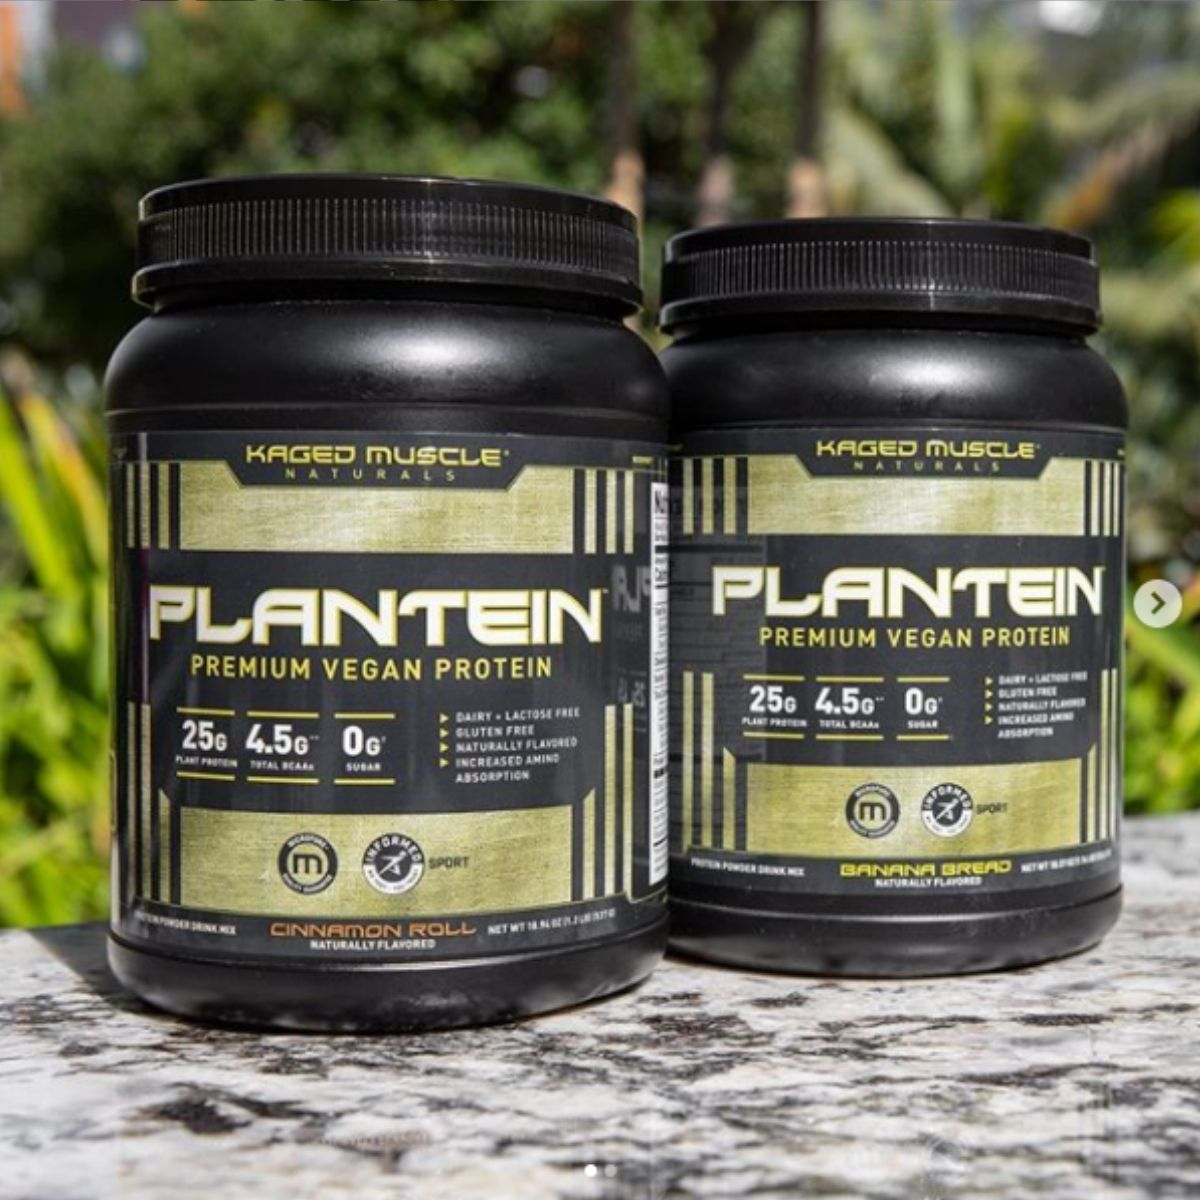 Kaged Muscle Plantein, An All New Plant Based Protein Powder